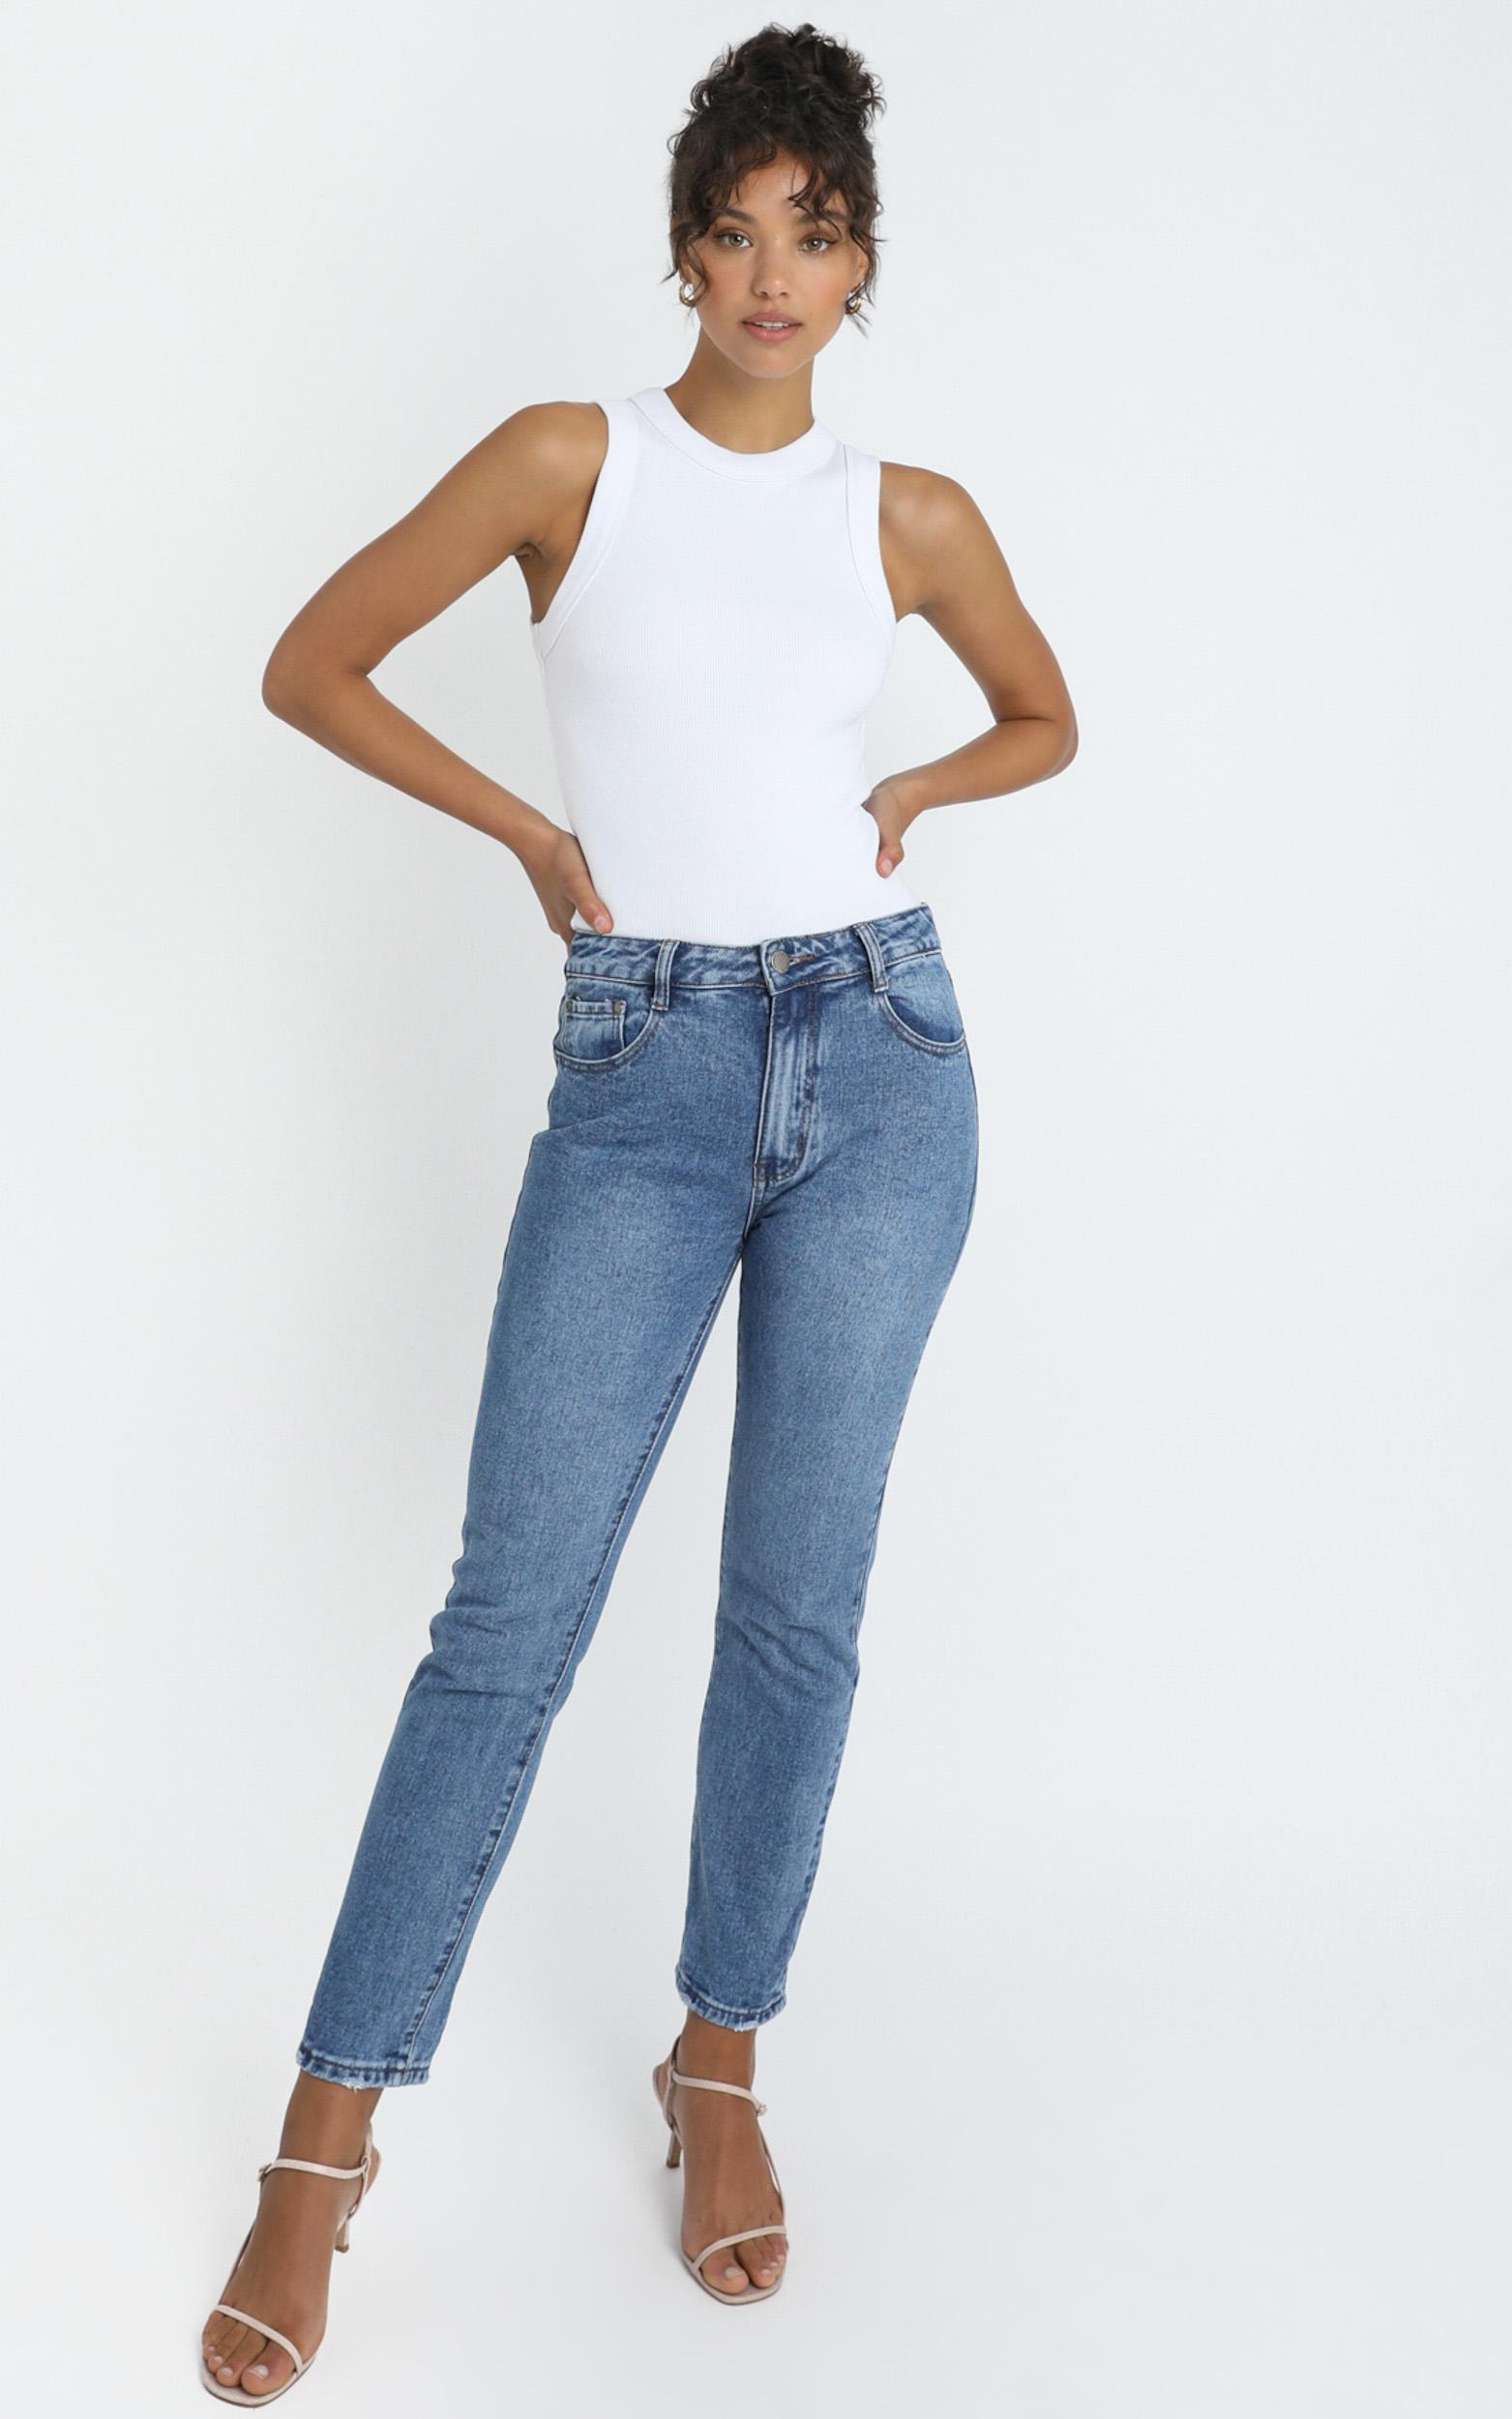 Remy Jeans in mid wash denim - 14 (XL), Blue, hi-res image number null